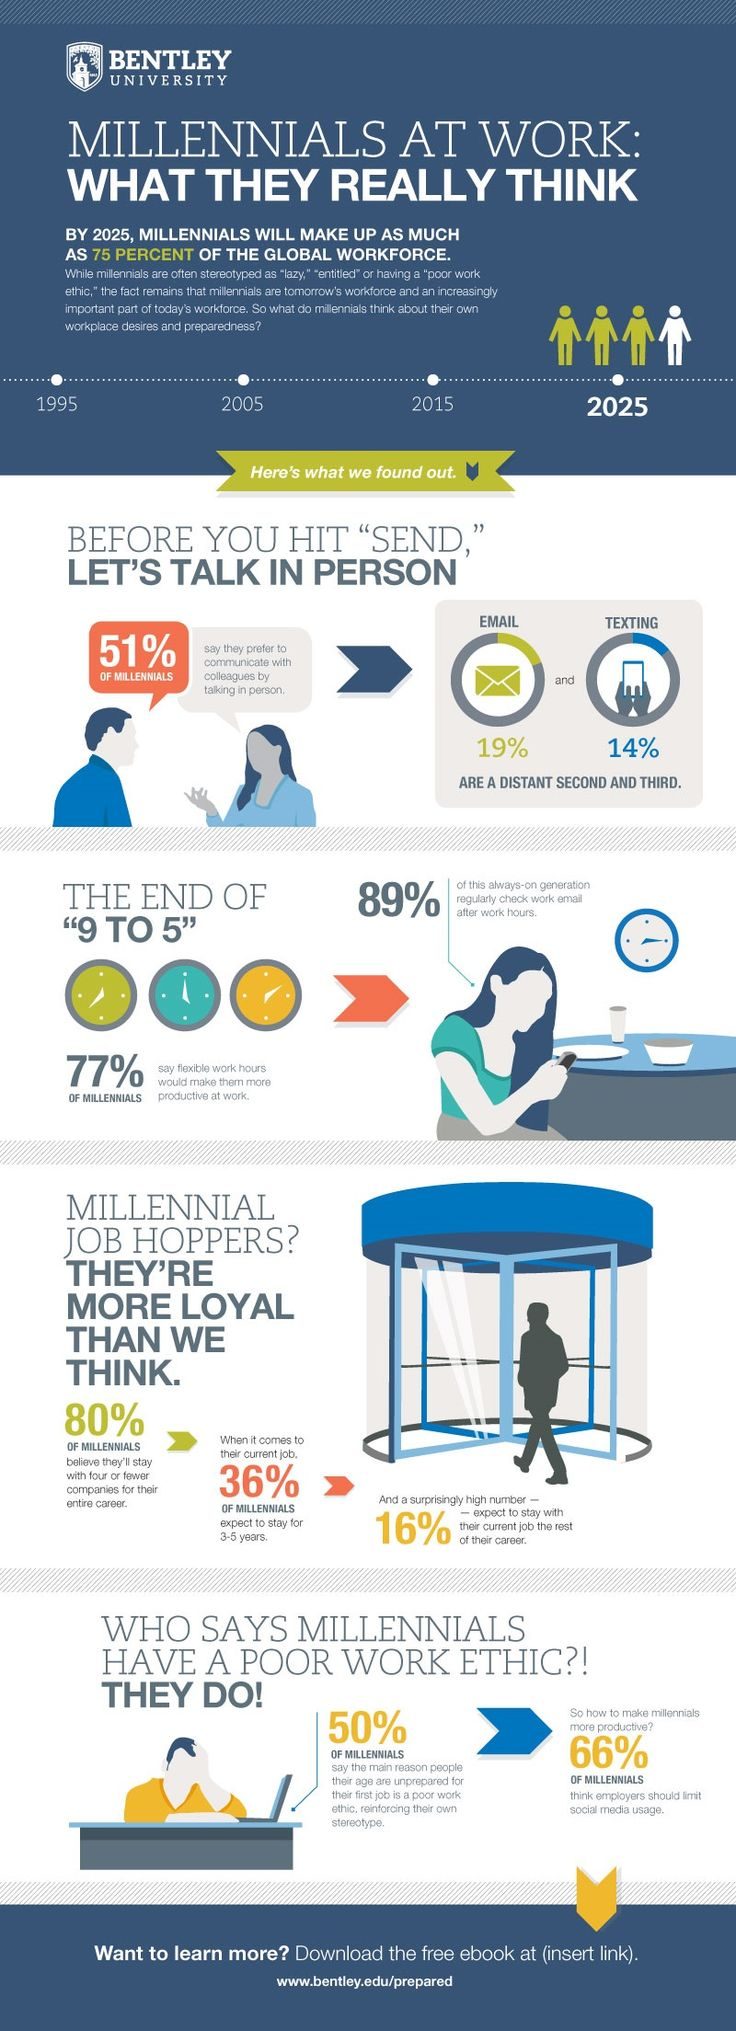 Why a Focus on the Triple Bottom Line Is Vital (Infographic)